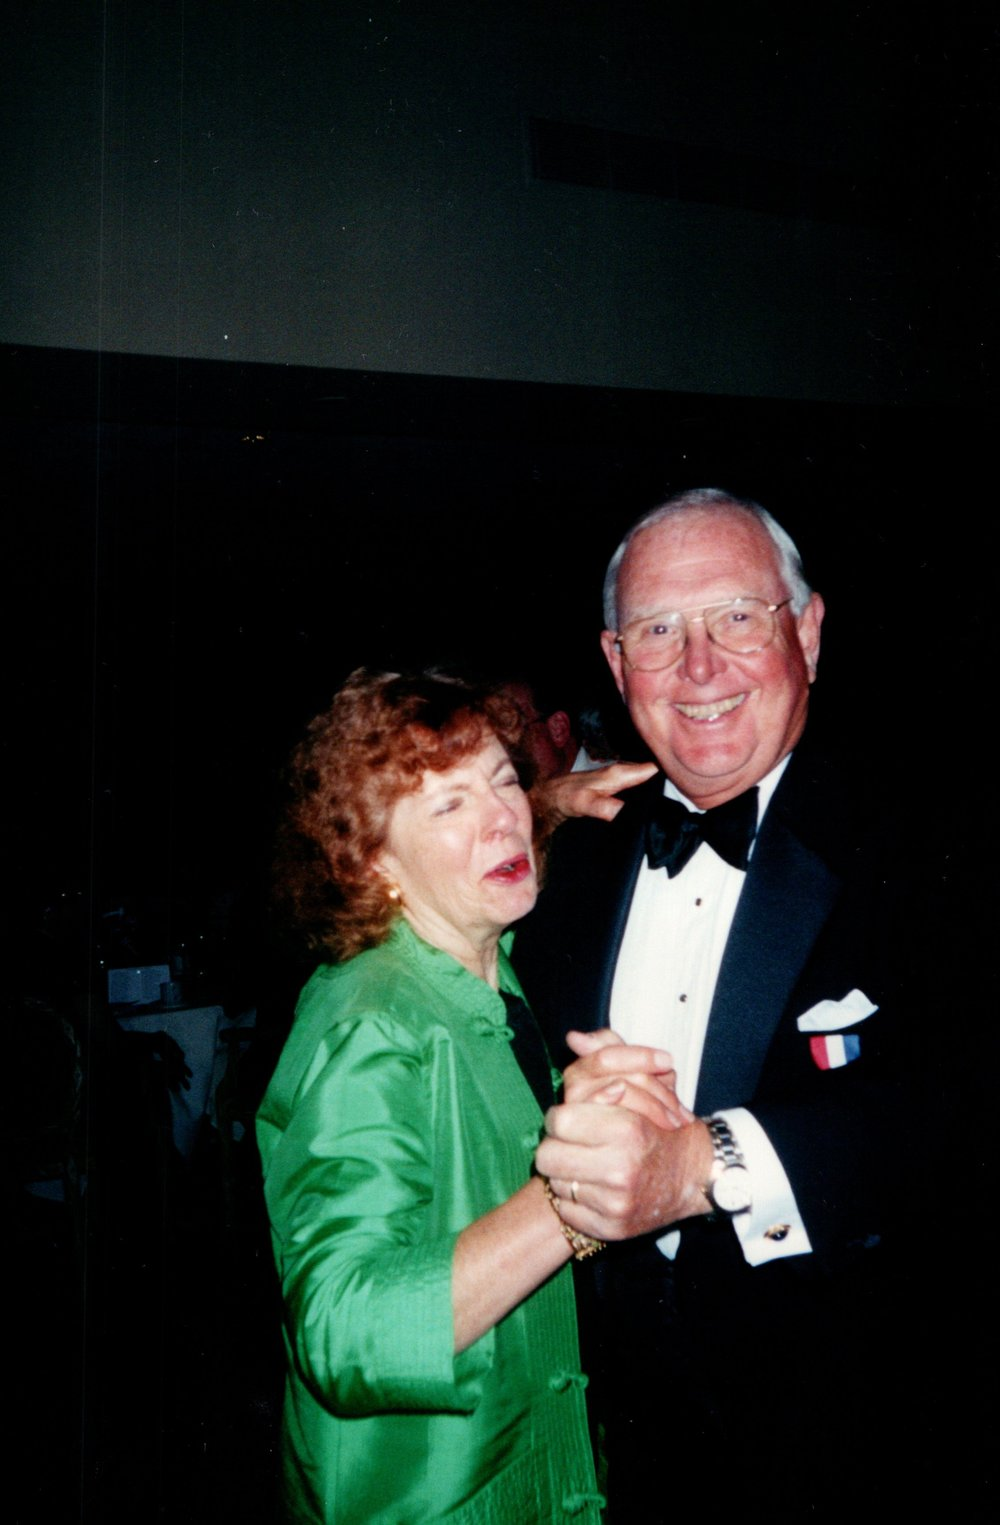 2_11_2002 - HYP DINNER DANCE - VINEYARD COUNTRY CLUB 5.jpg